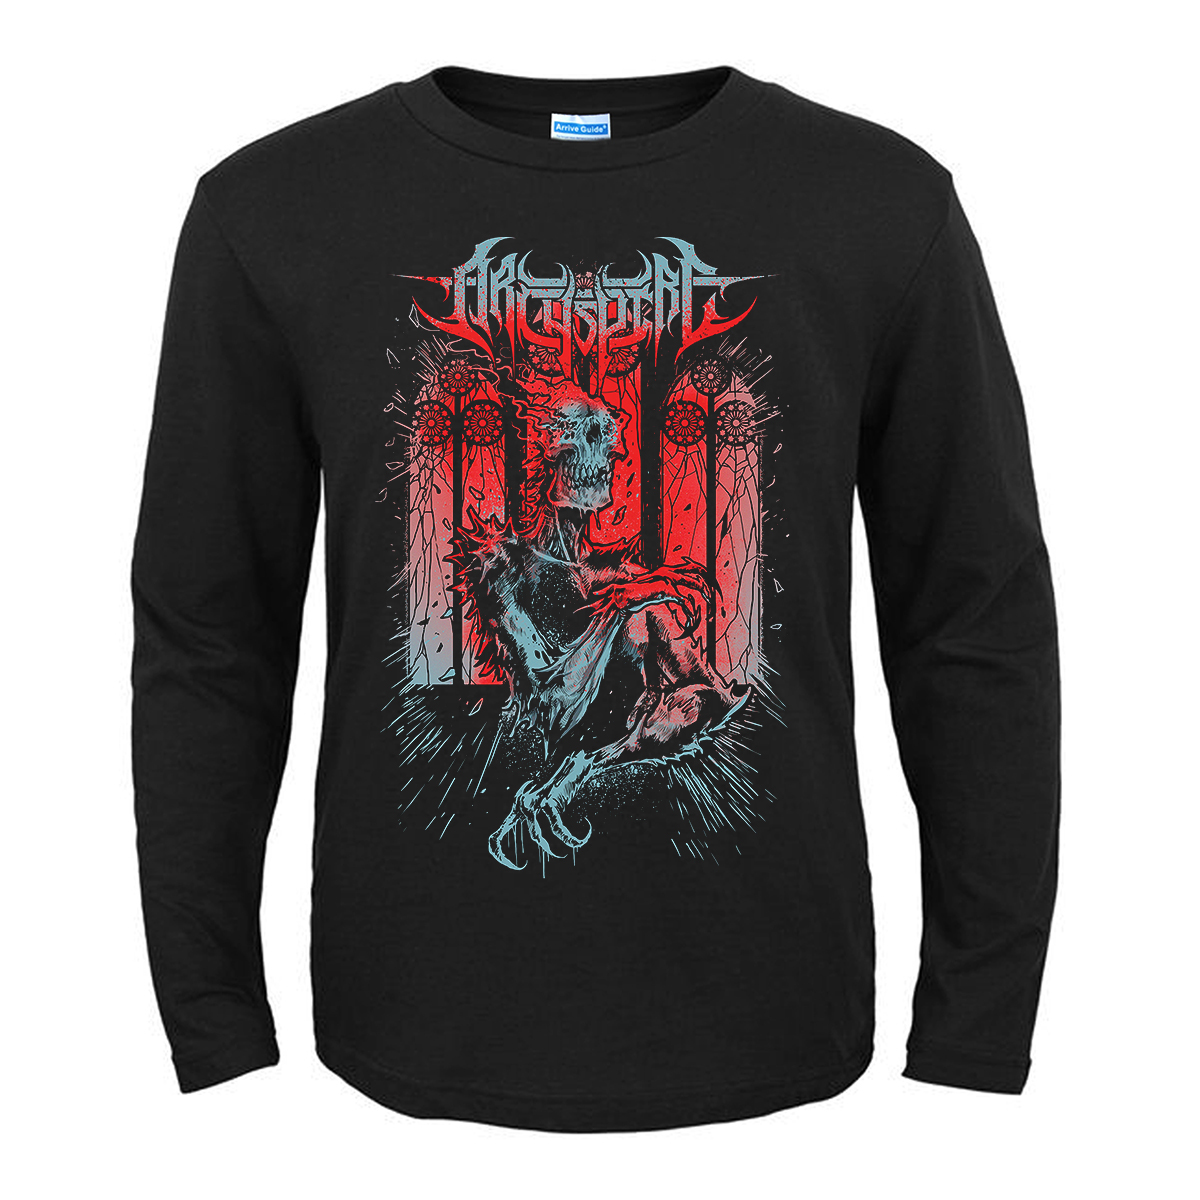 Collectibles T-Shirt Archspire Lucid Collective Black